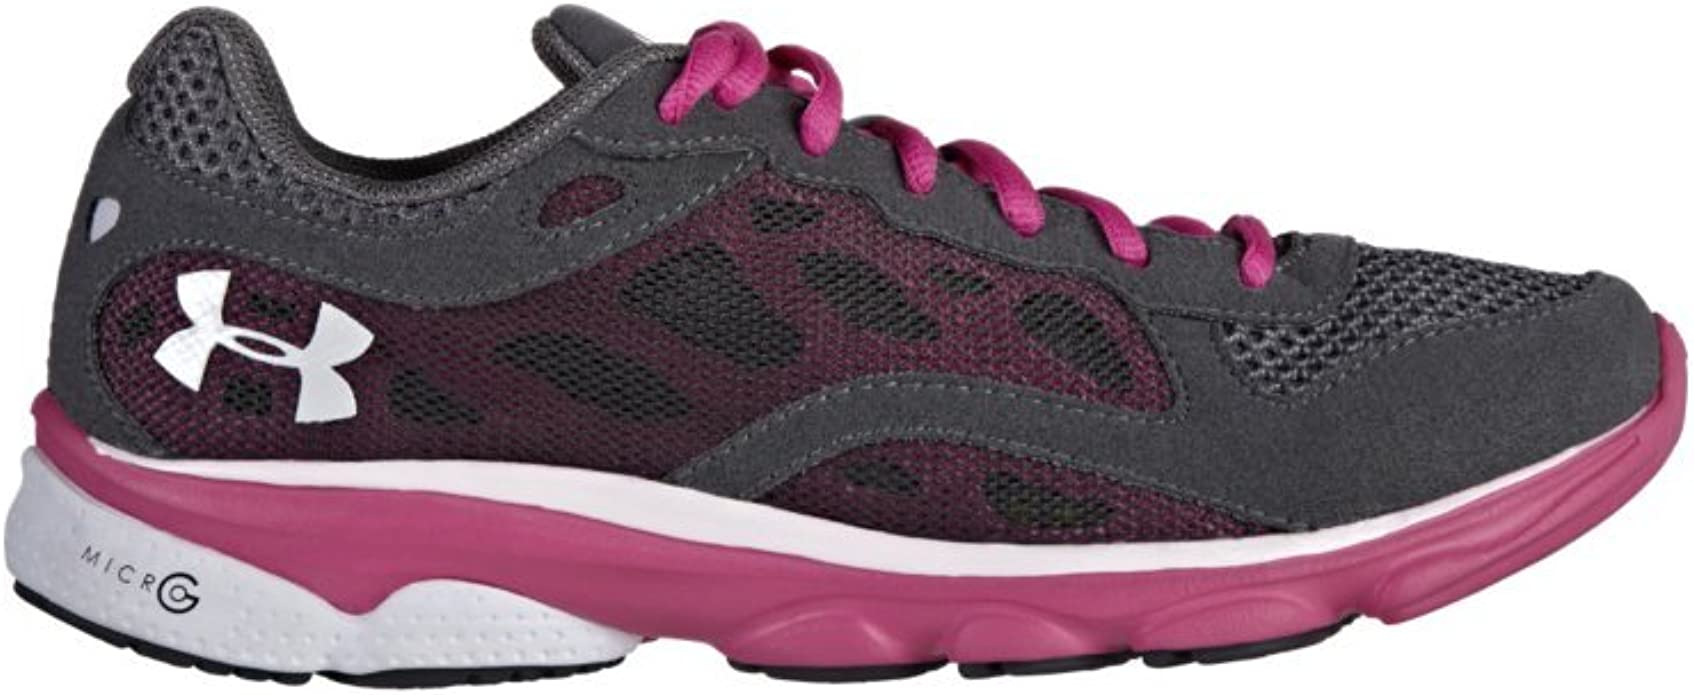 Ondas Grave Profesor  Under Armour Micro G Ignite Women's Running Shoes - 11: Amazon.ca: Shoes &  Handbags